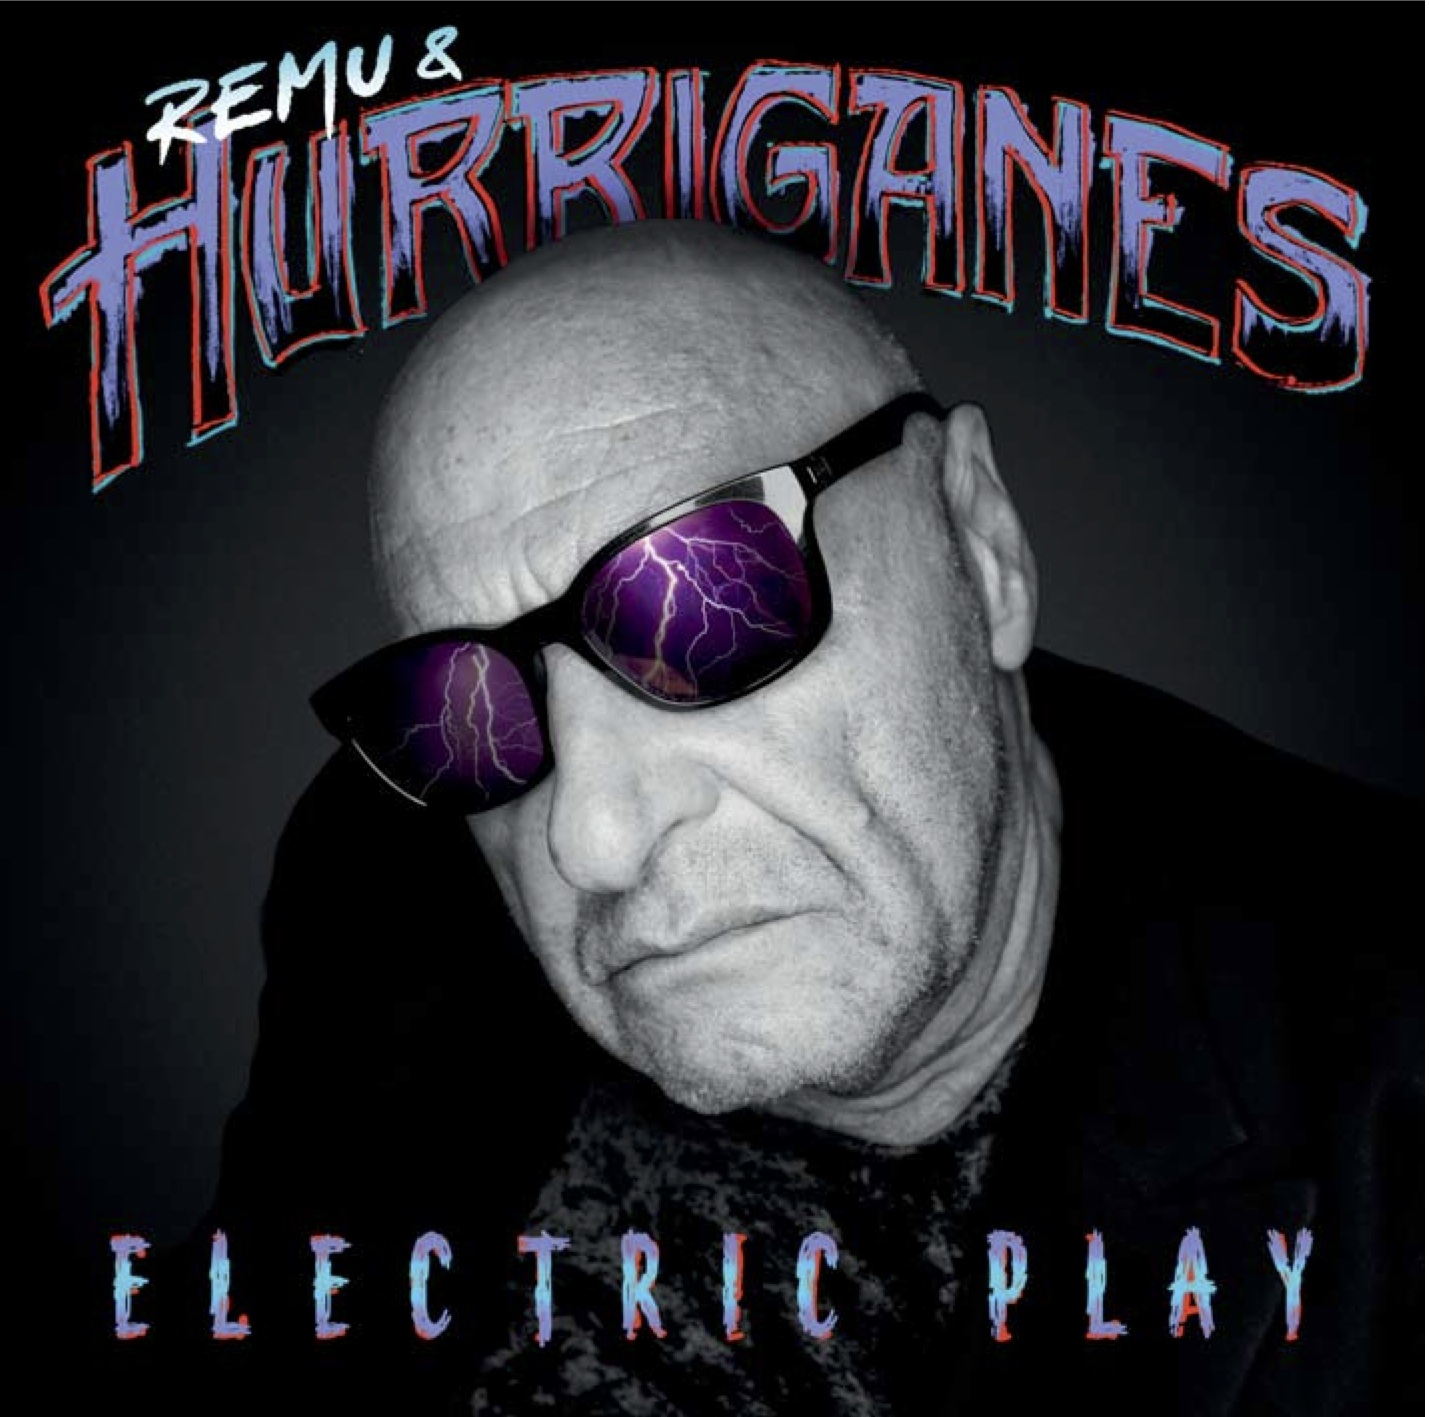 Remu & Hurriganes album cover